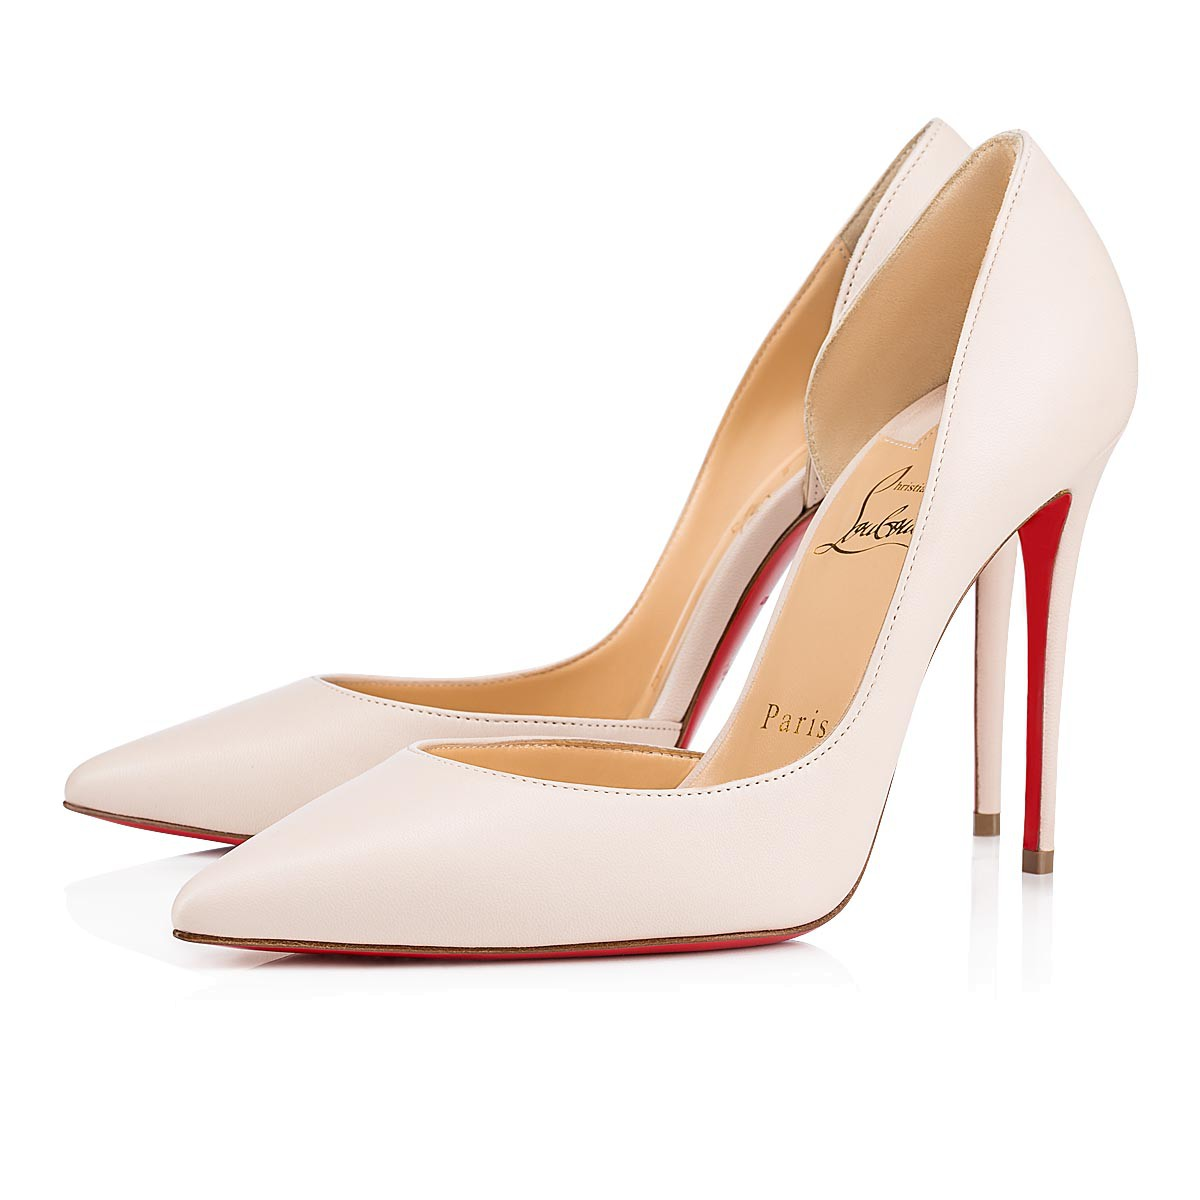 grossiste 42d6c bcd71 Iriza 100 nappa 100 Ivory Nappa Leather - Souliers Femme - Christian  Louboutin